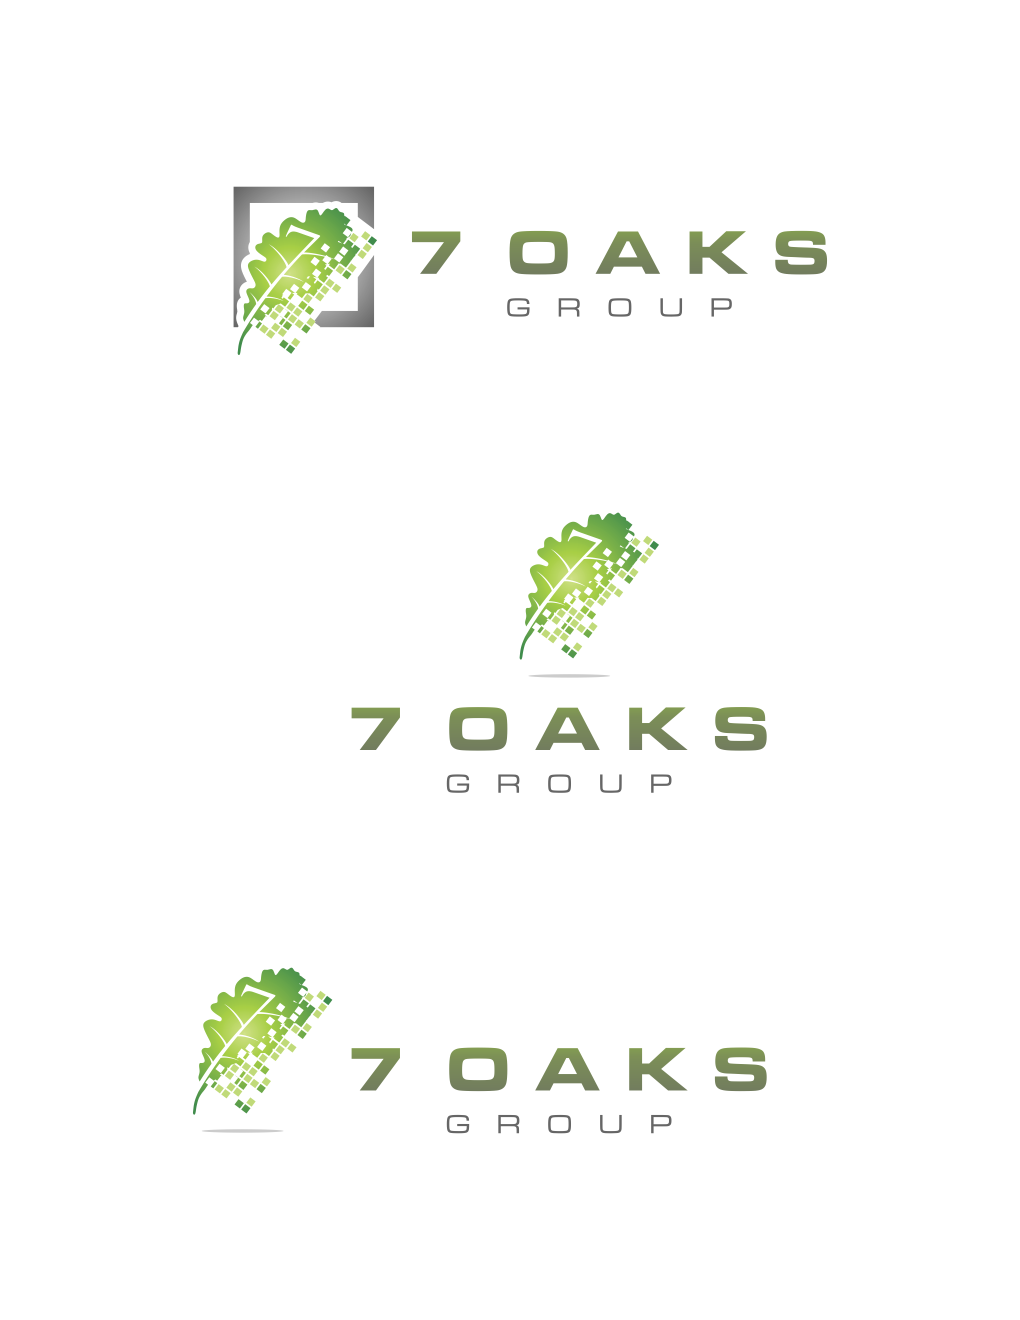 Create an inspiring brand & logo for an awesome, innovative, growing software consulting firm